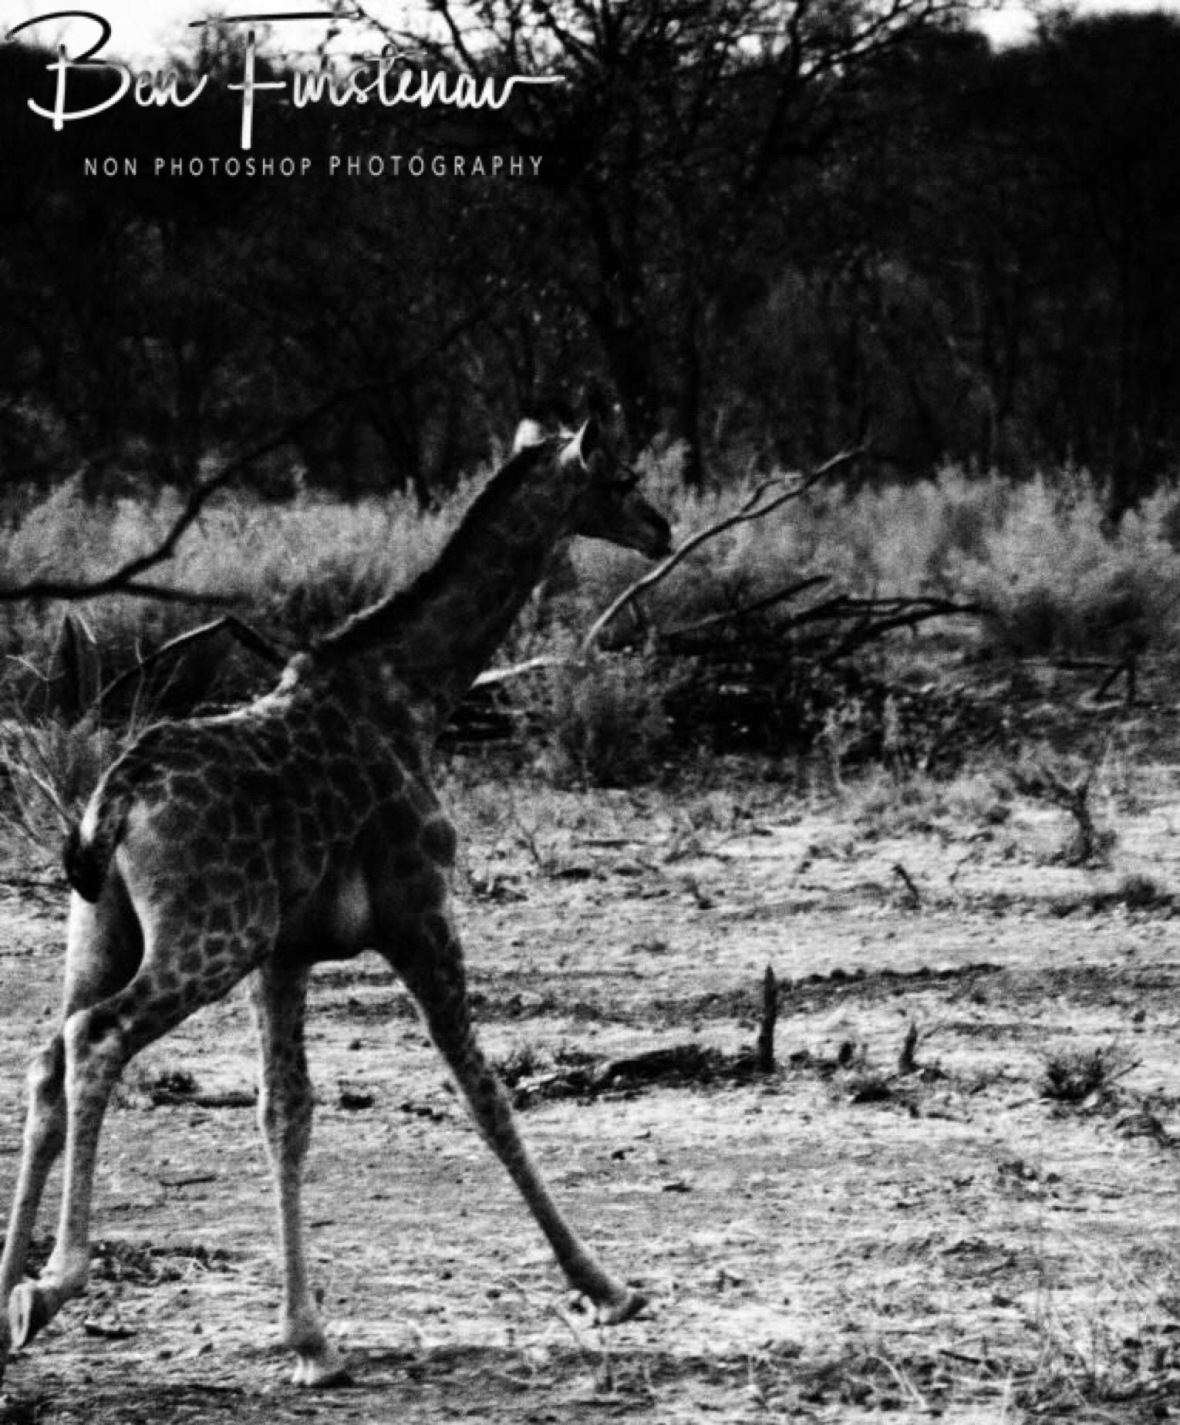 Young giraffe running for cover, Sophienhof, Outjo, Namibia